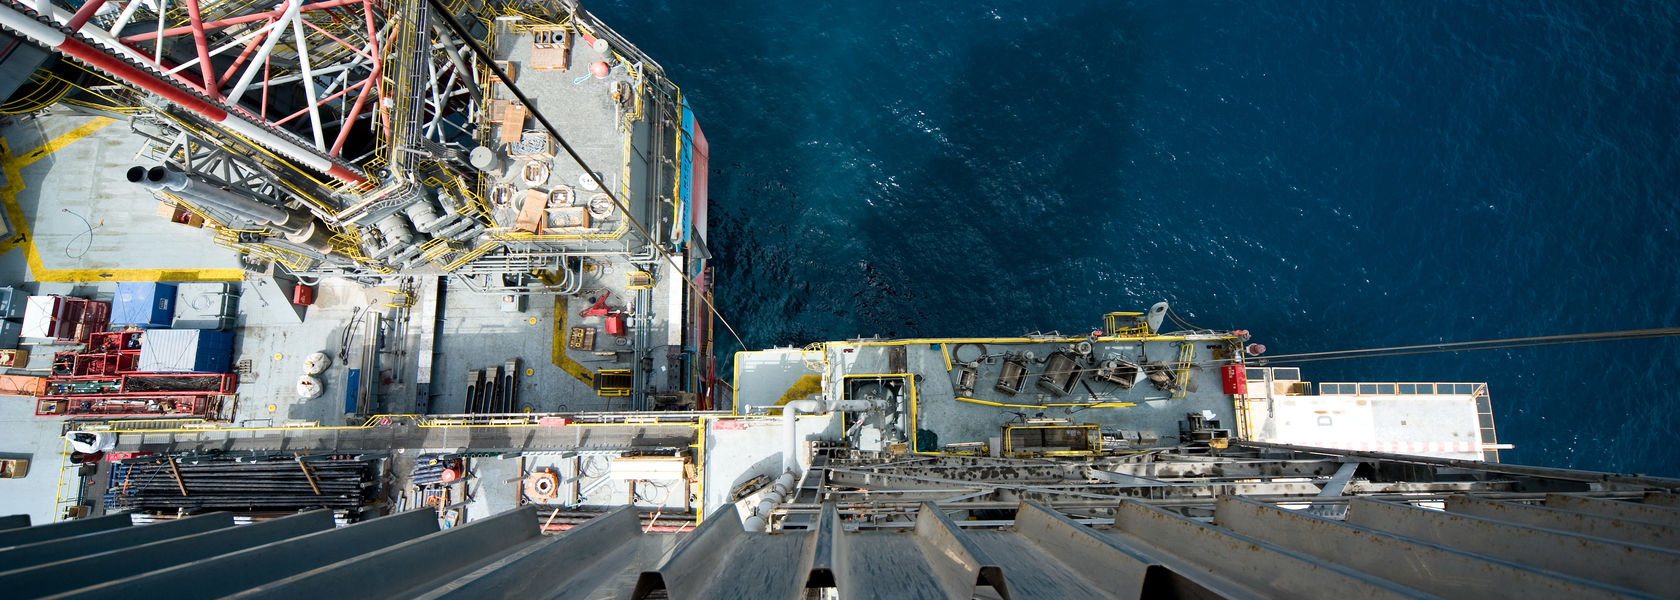 Australia's offshore regulator starts physical inspections again